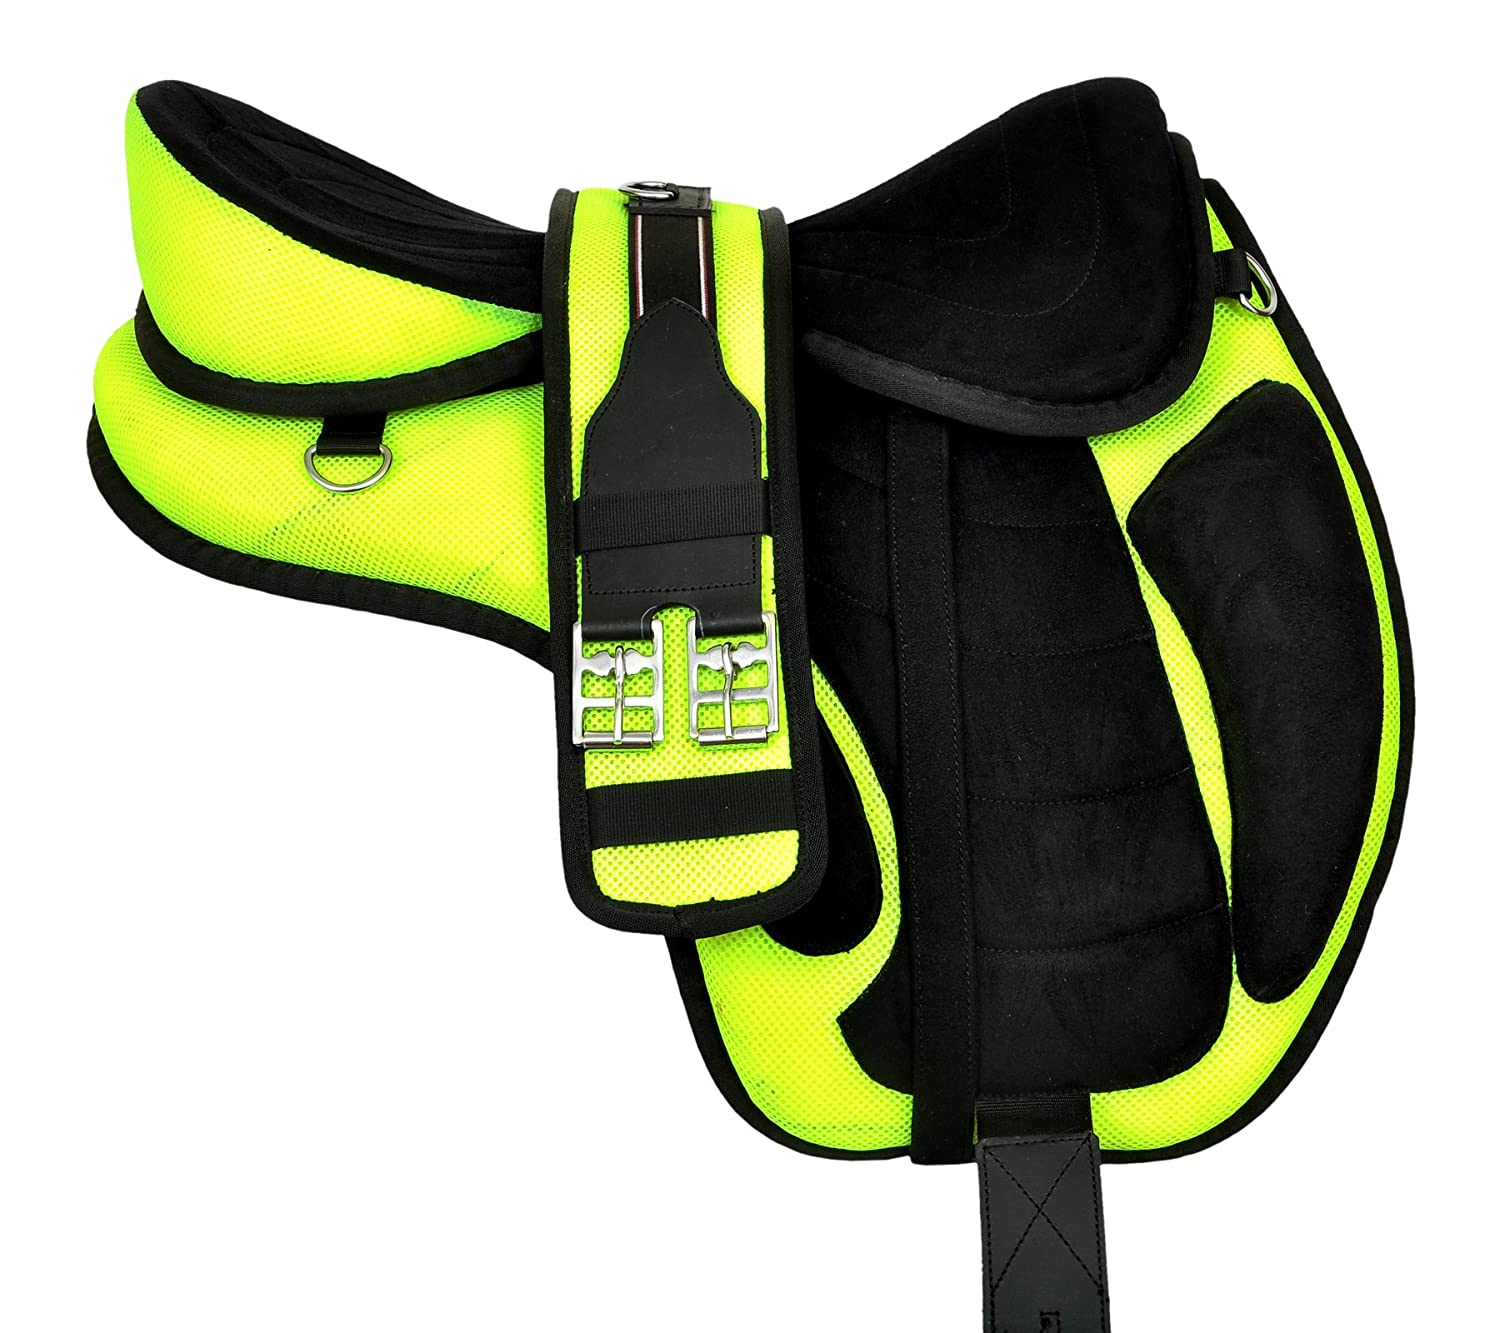 Manaal Enterprises Multicolored Synthetic Treeless FREEMAX English Horse Saddles Tack Get Matching Girth & Leather Straps Size 14' to 18' Inches Seat Available (17' Inches Seat)